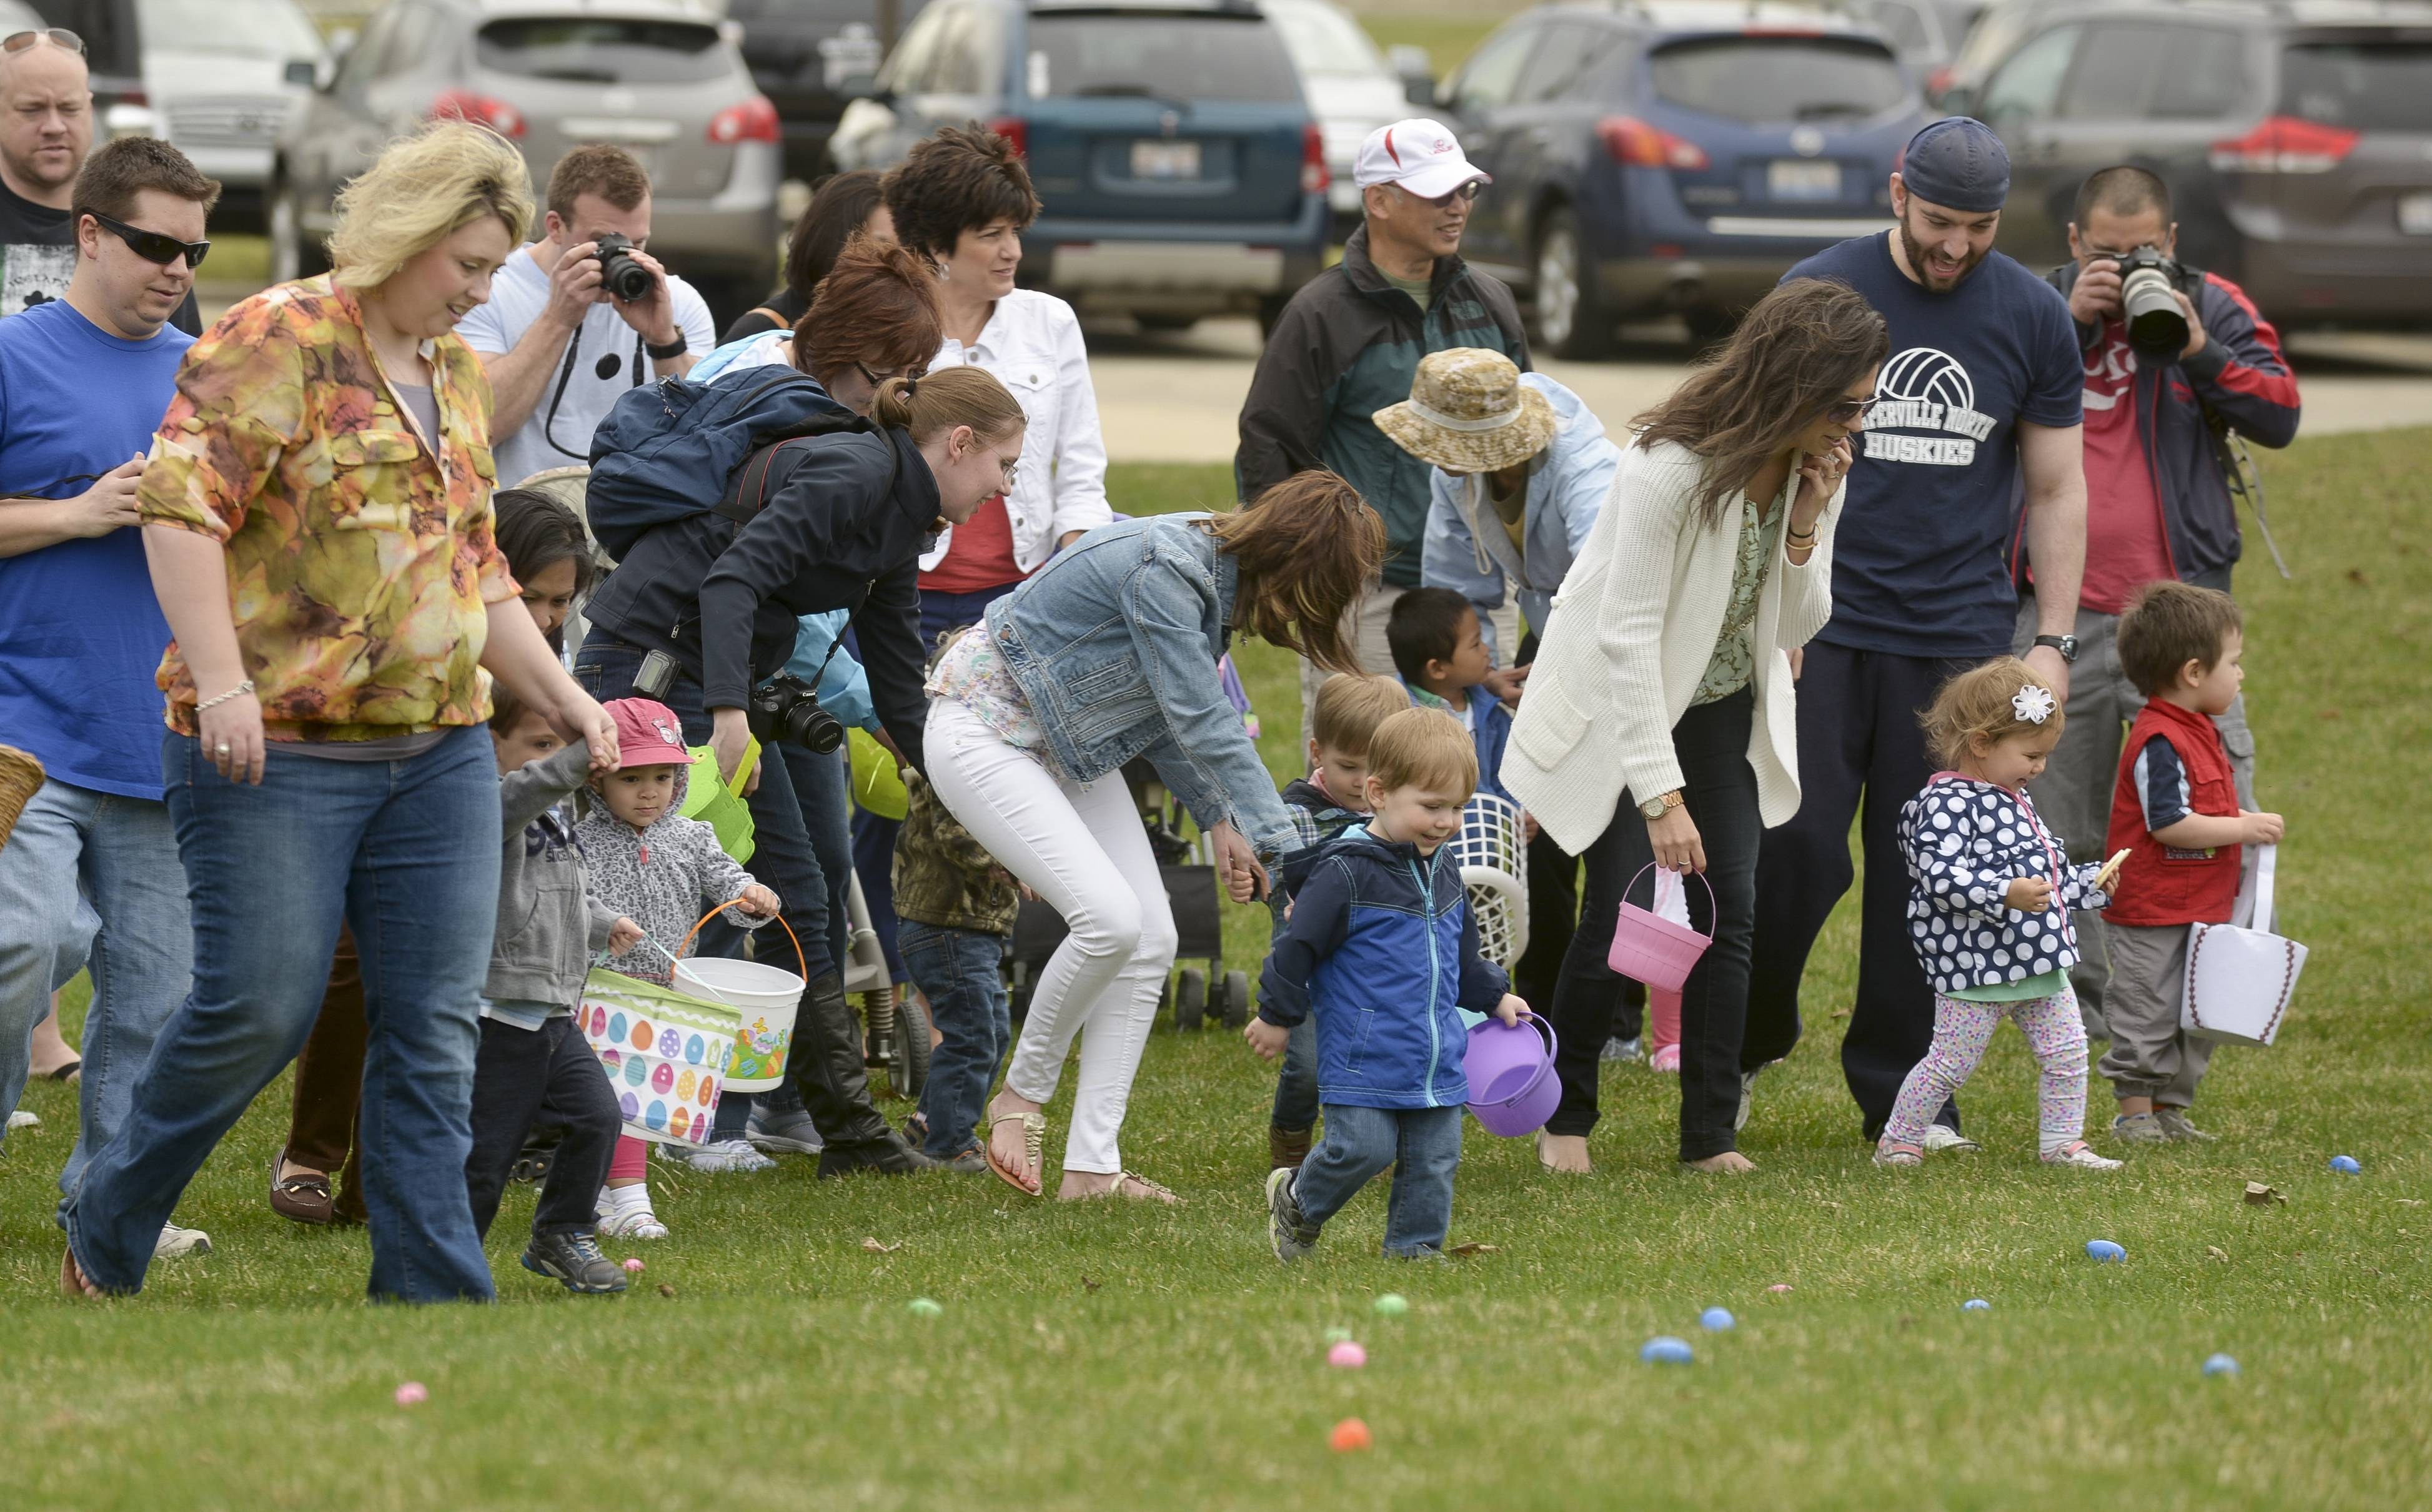 Children rush to gather up eggs during an Easter egg hunt Saturday at Lisle's Community Park,